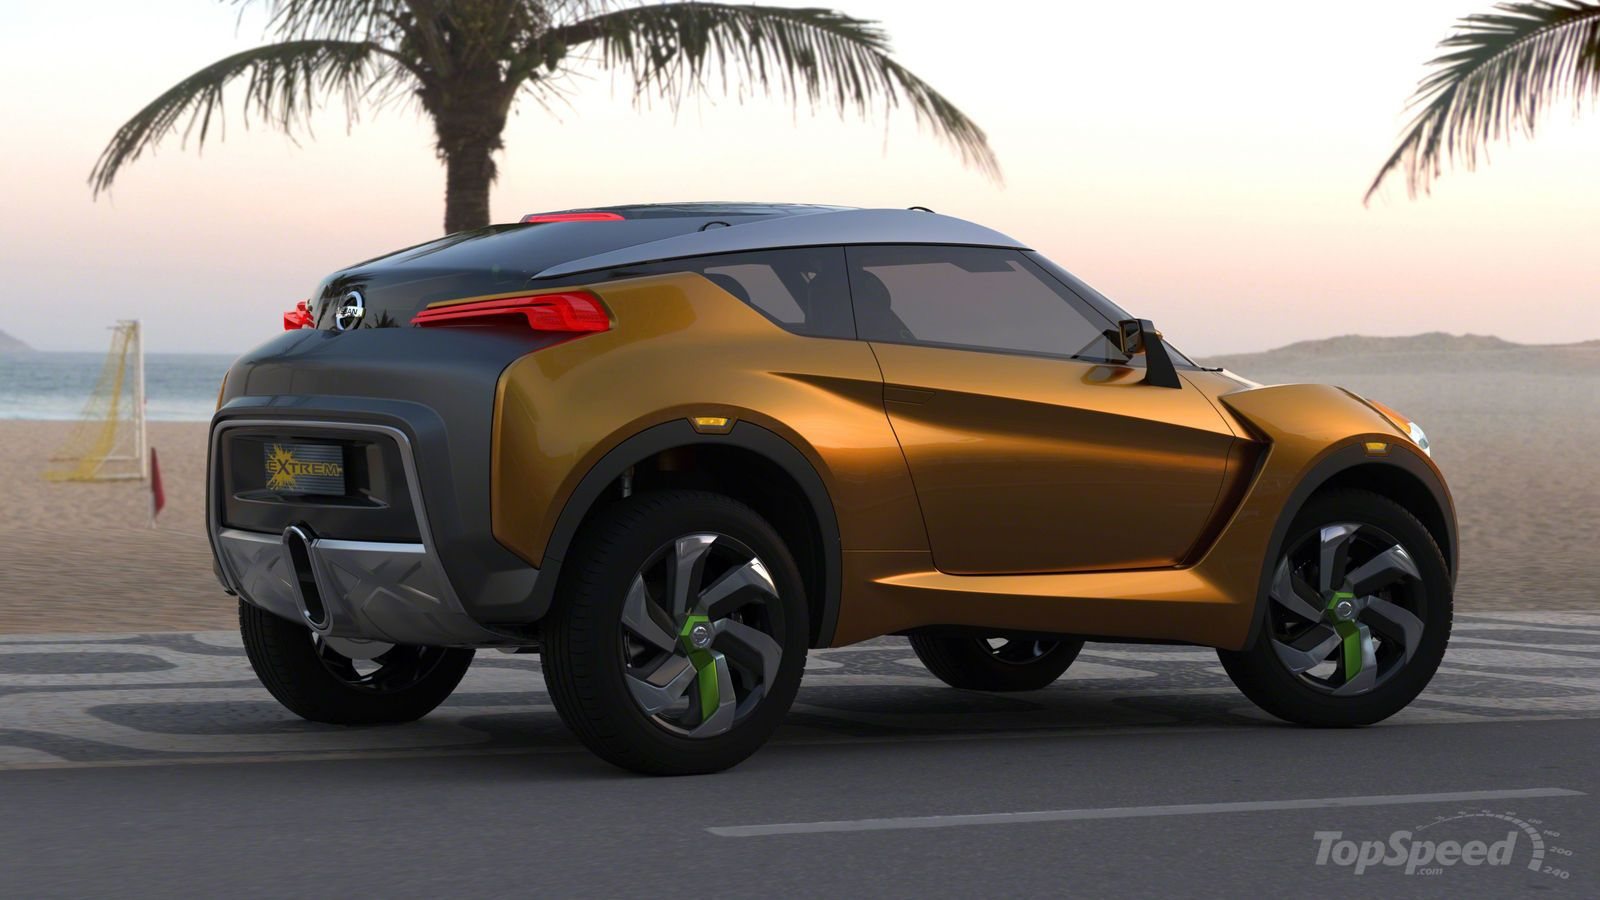 2012 Nissan Extrem Concept Pictures Photos Wallpapers And Video Top Speed In 2020 Nissan Juke Nismo Nissan Juke Concept Cars